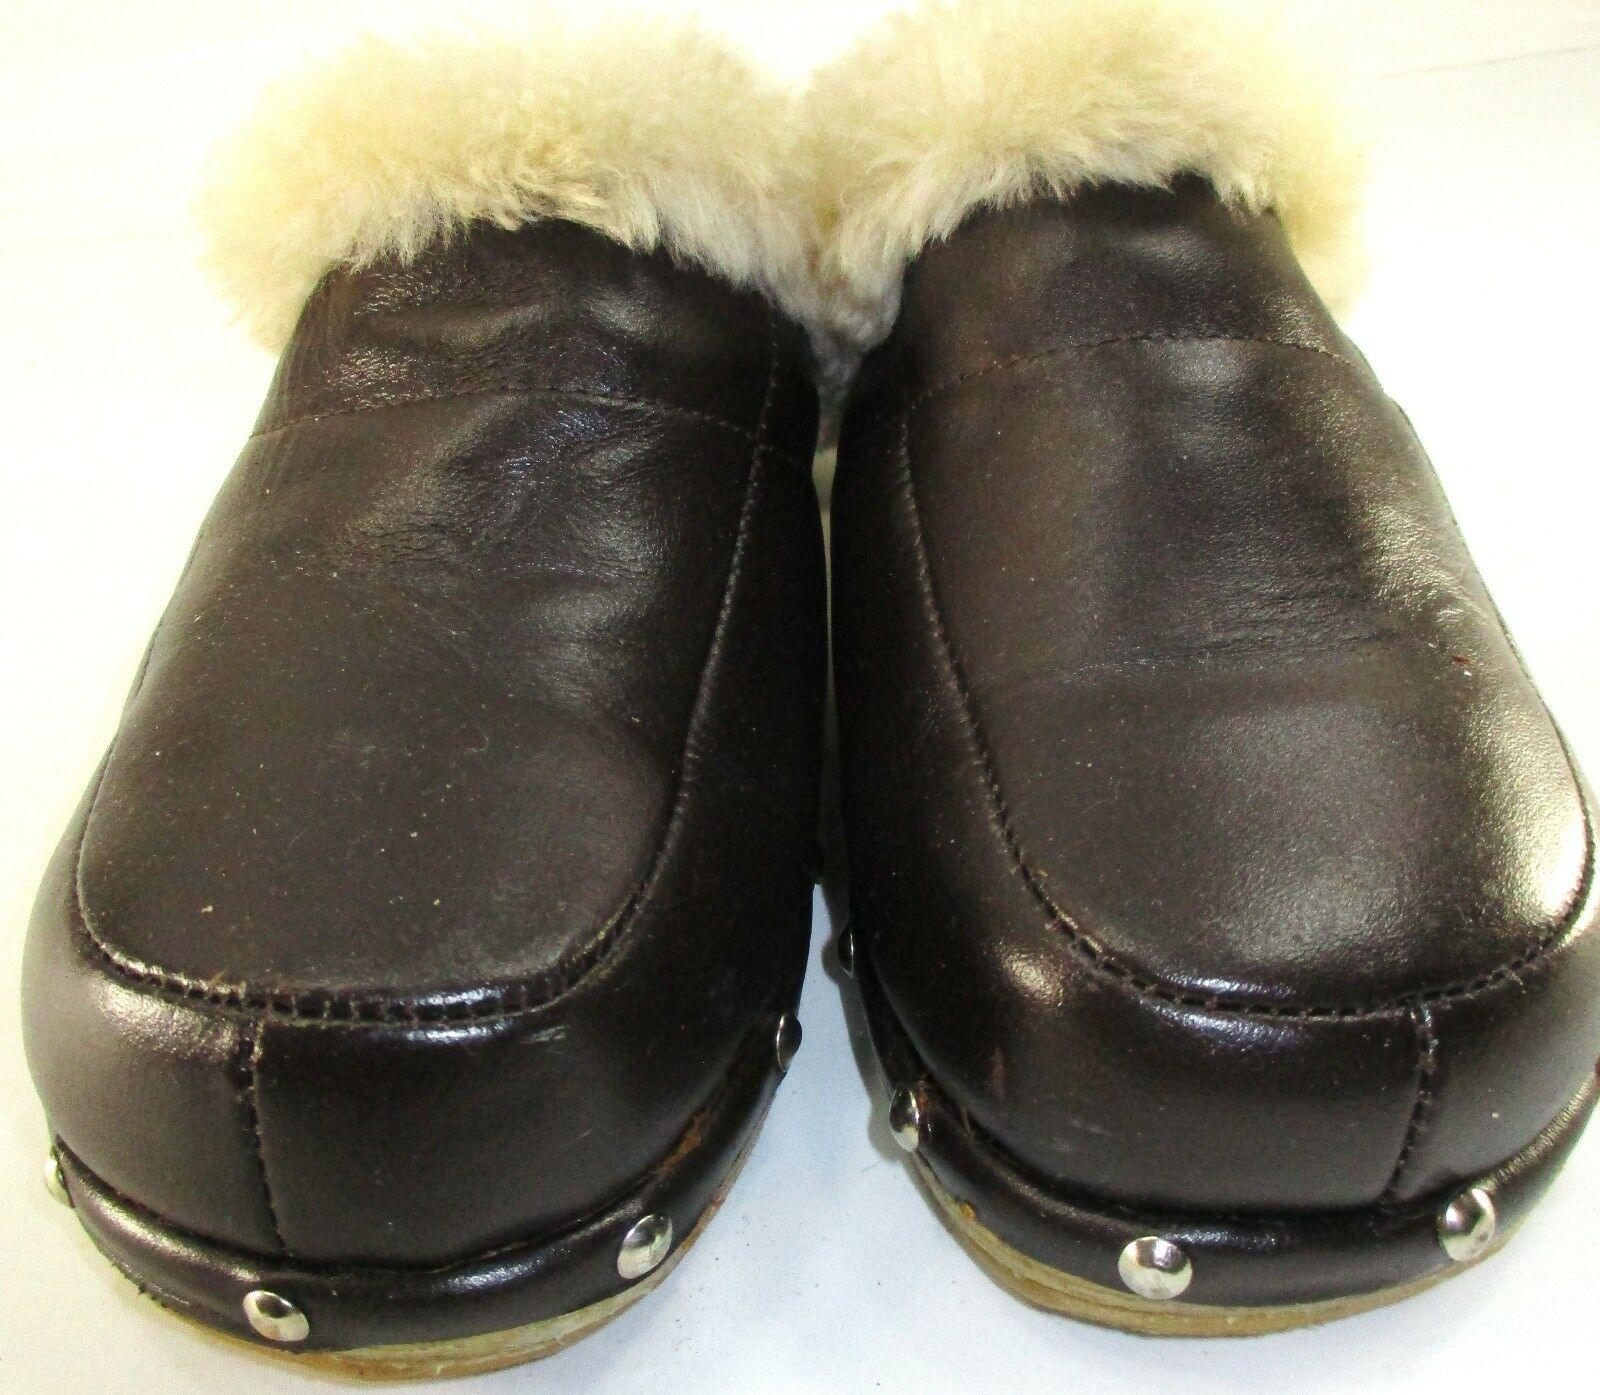 RJS Fussies femmes Clogs chaussures Taille 7 marron Sheep Sheep Sheep Skin Fur Lined 333ba5